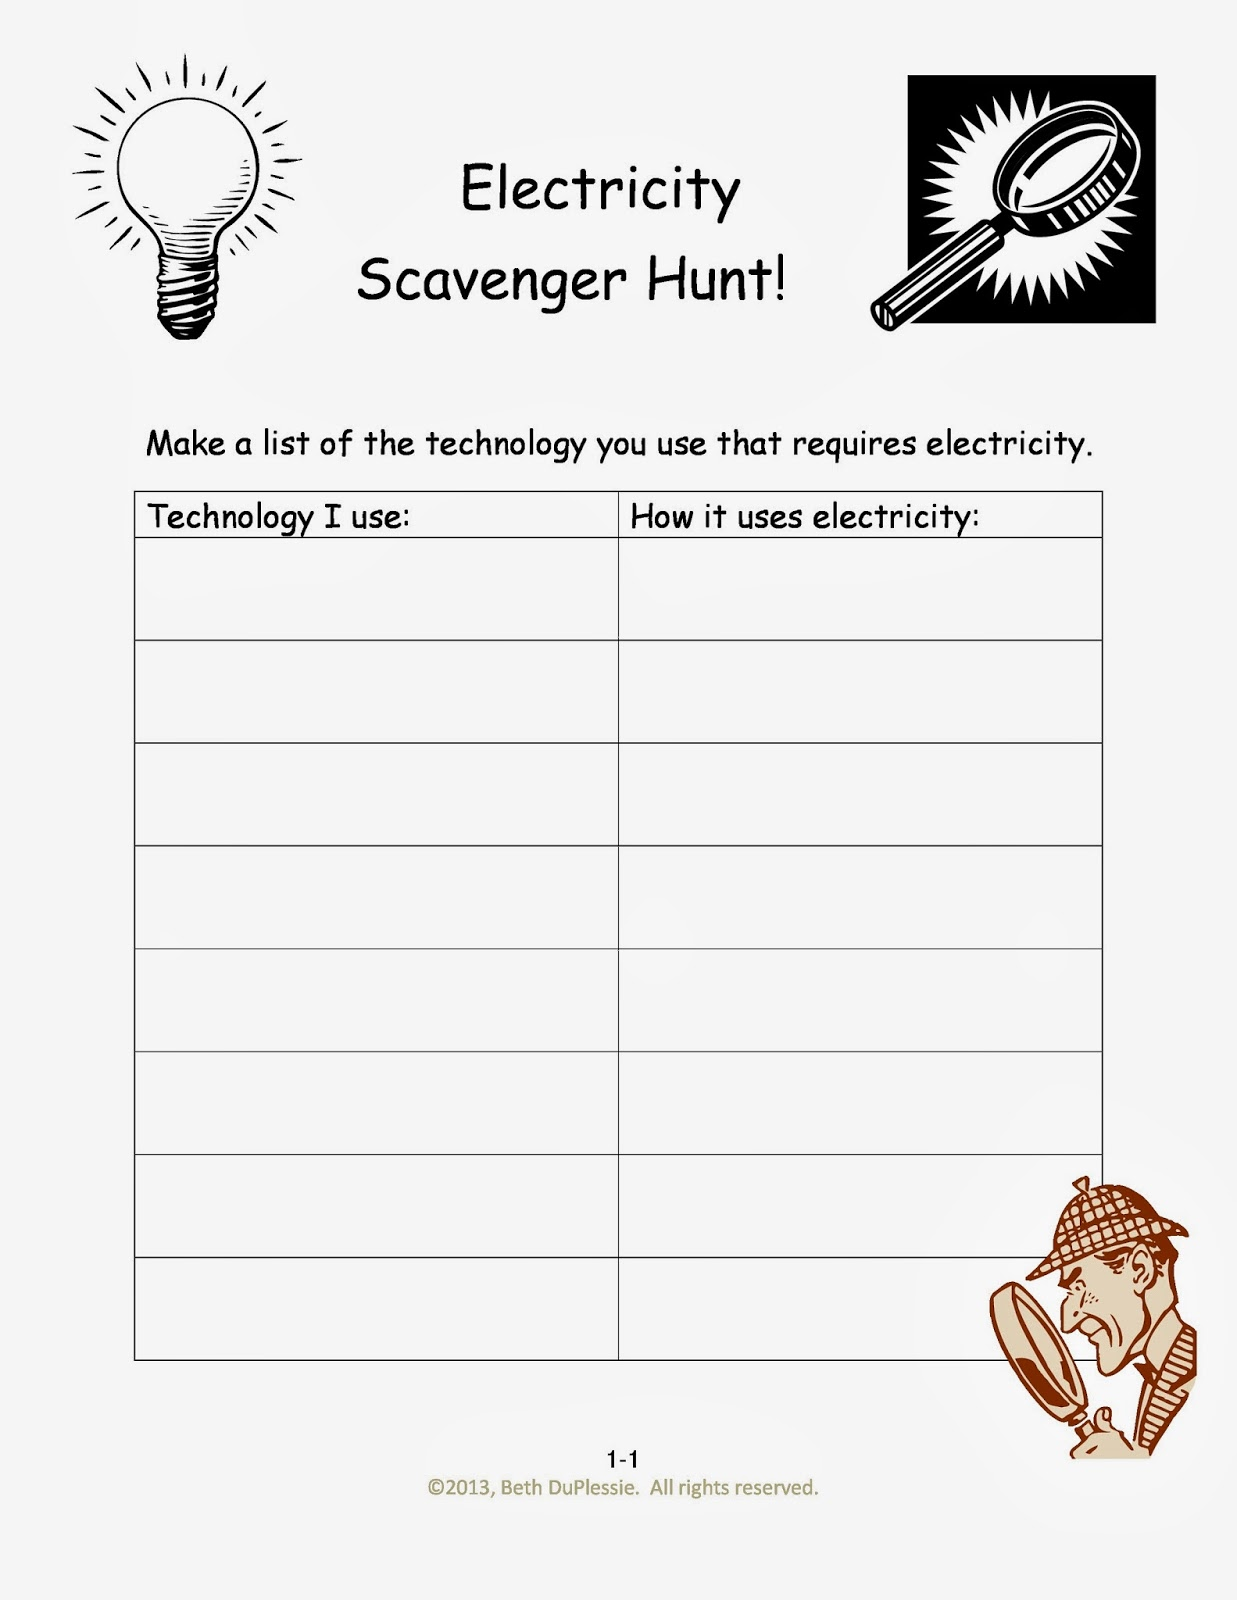 Worksheet Science Electricity